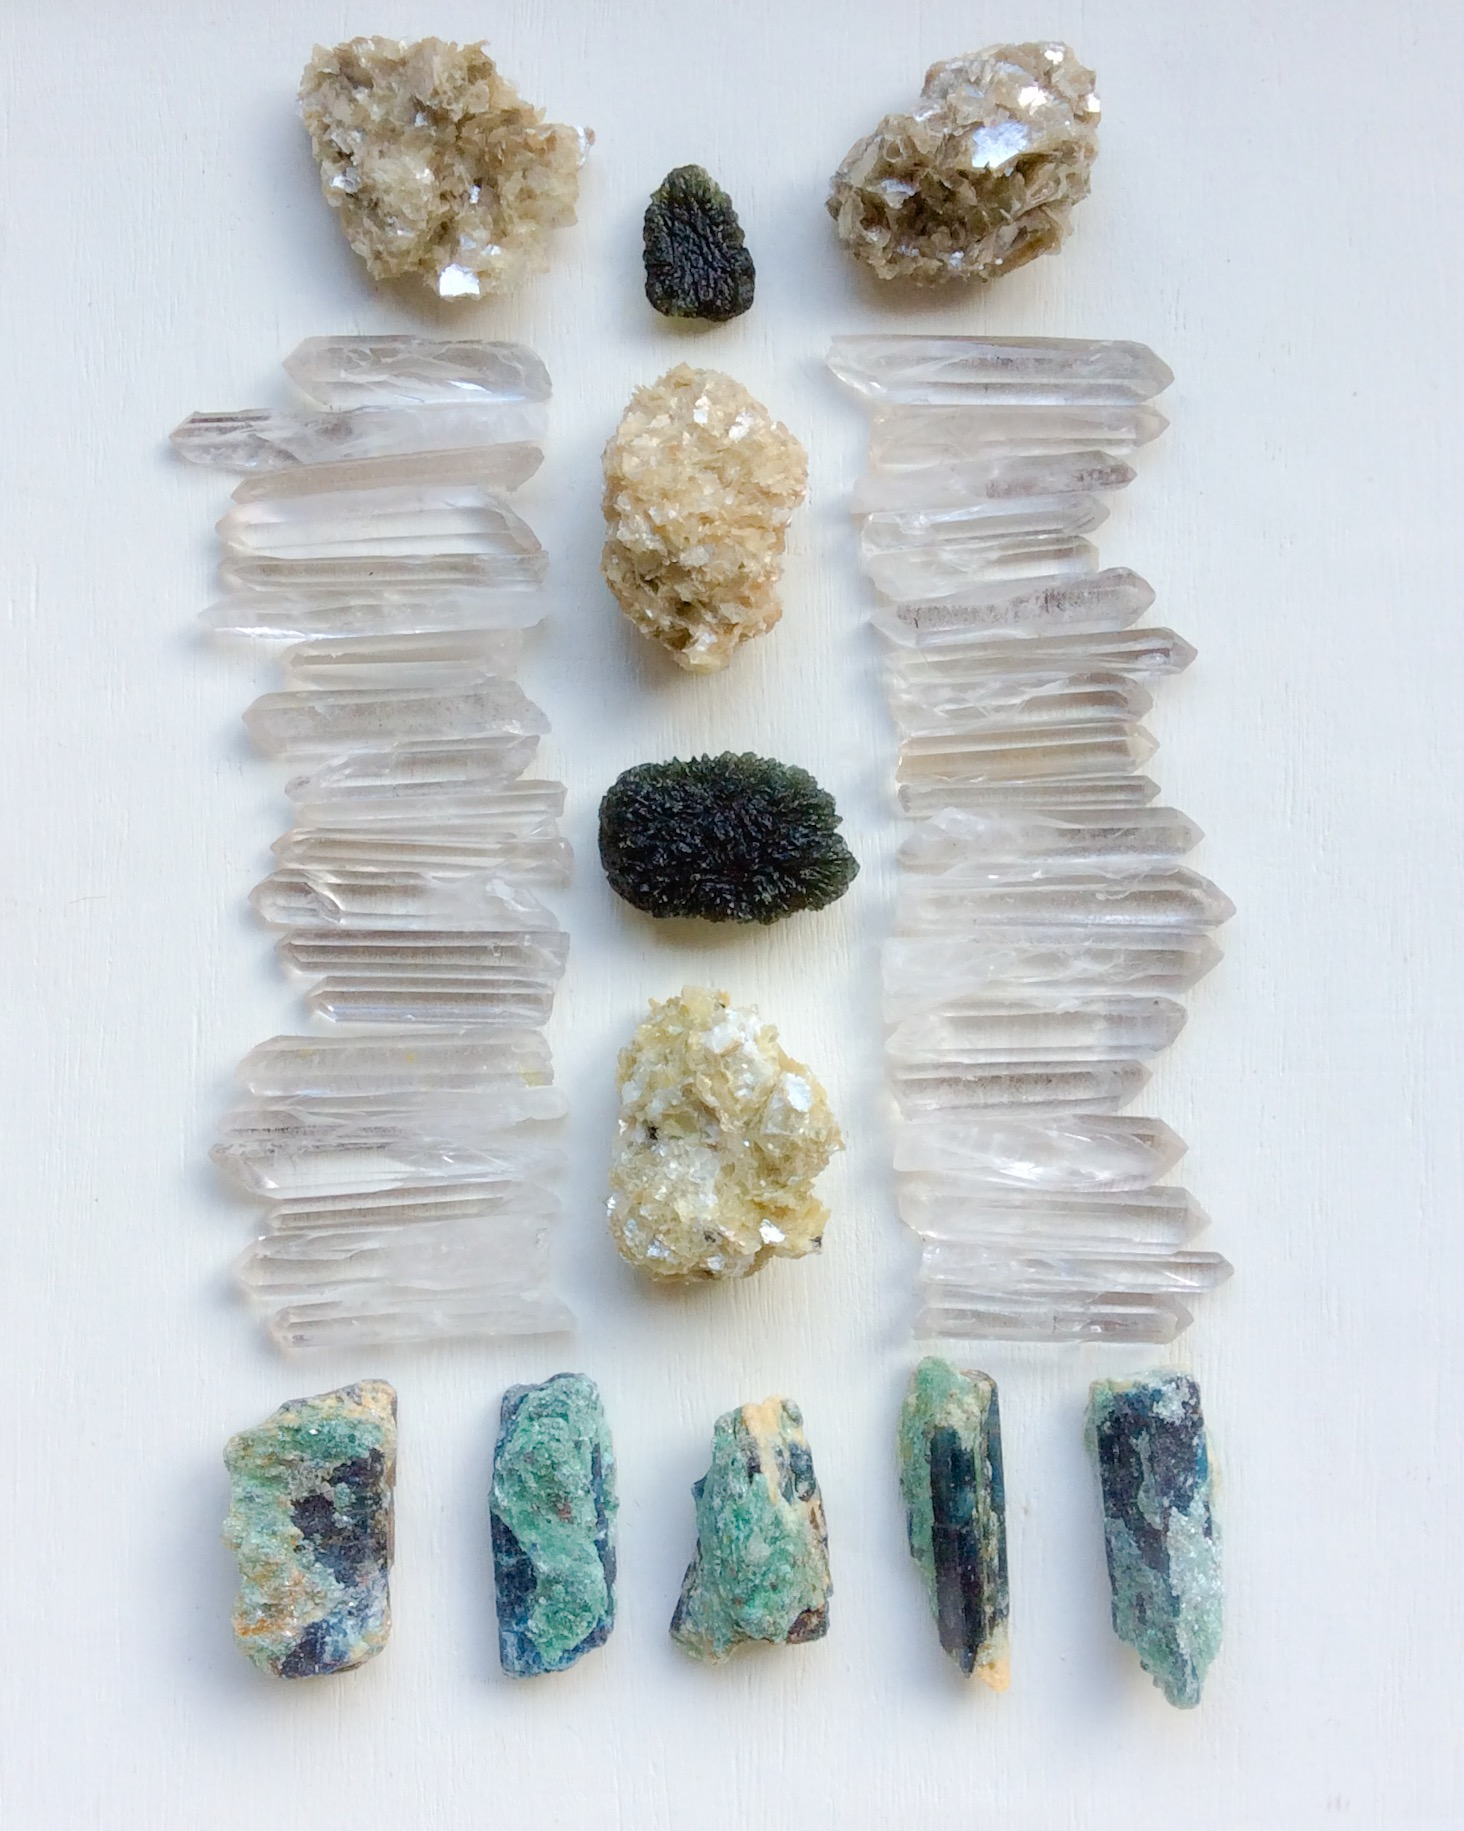 Moldavite, Star Muscovite, Lemurian Quartz, Quartz, and Fuchsite with Kyanite